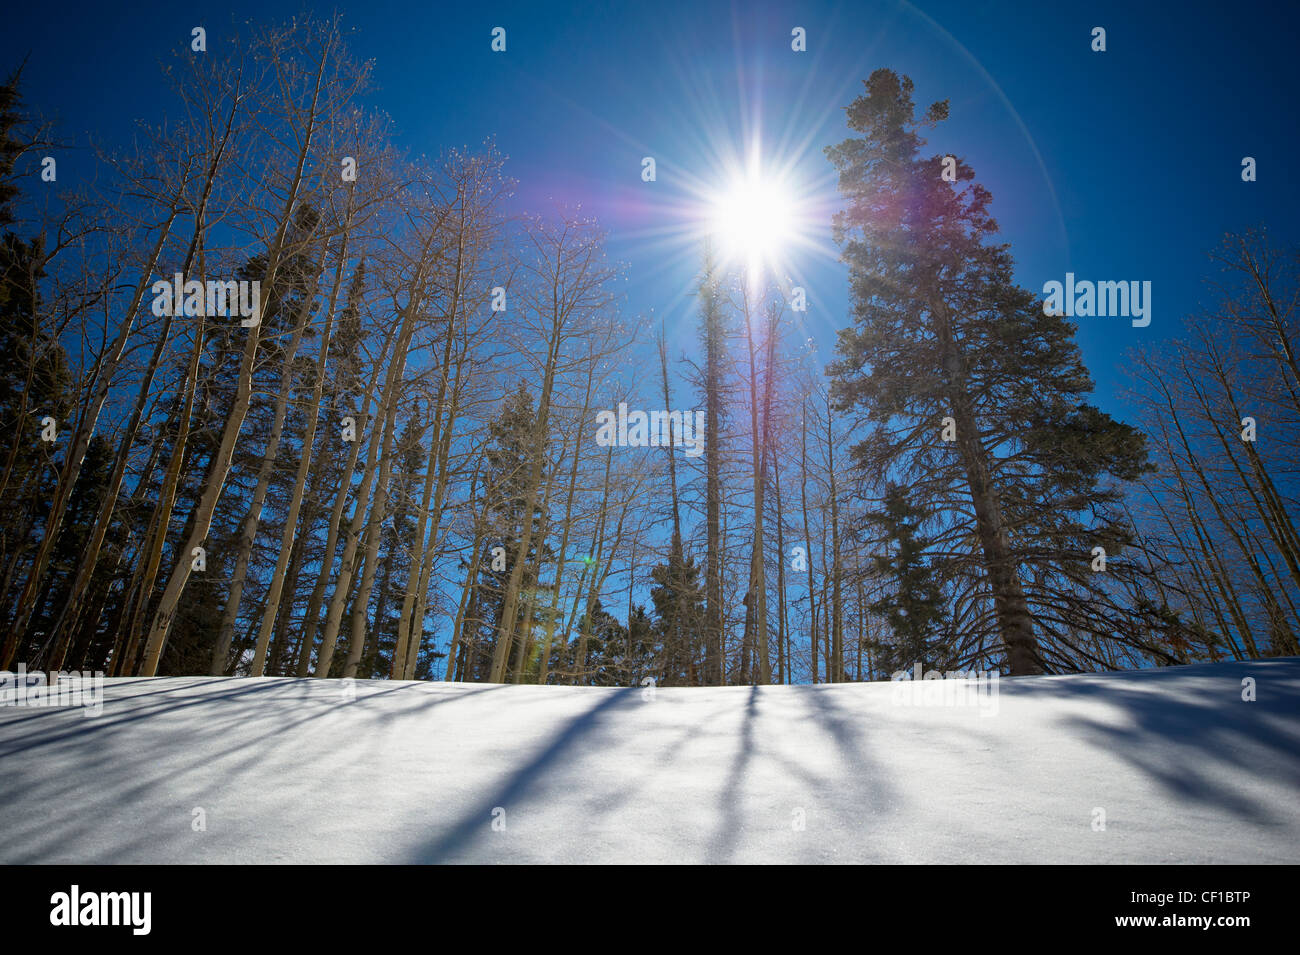 Cast Shadow Stock Photos Amp Cast Shadow Stock Images Alamy